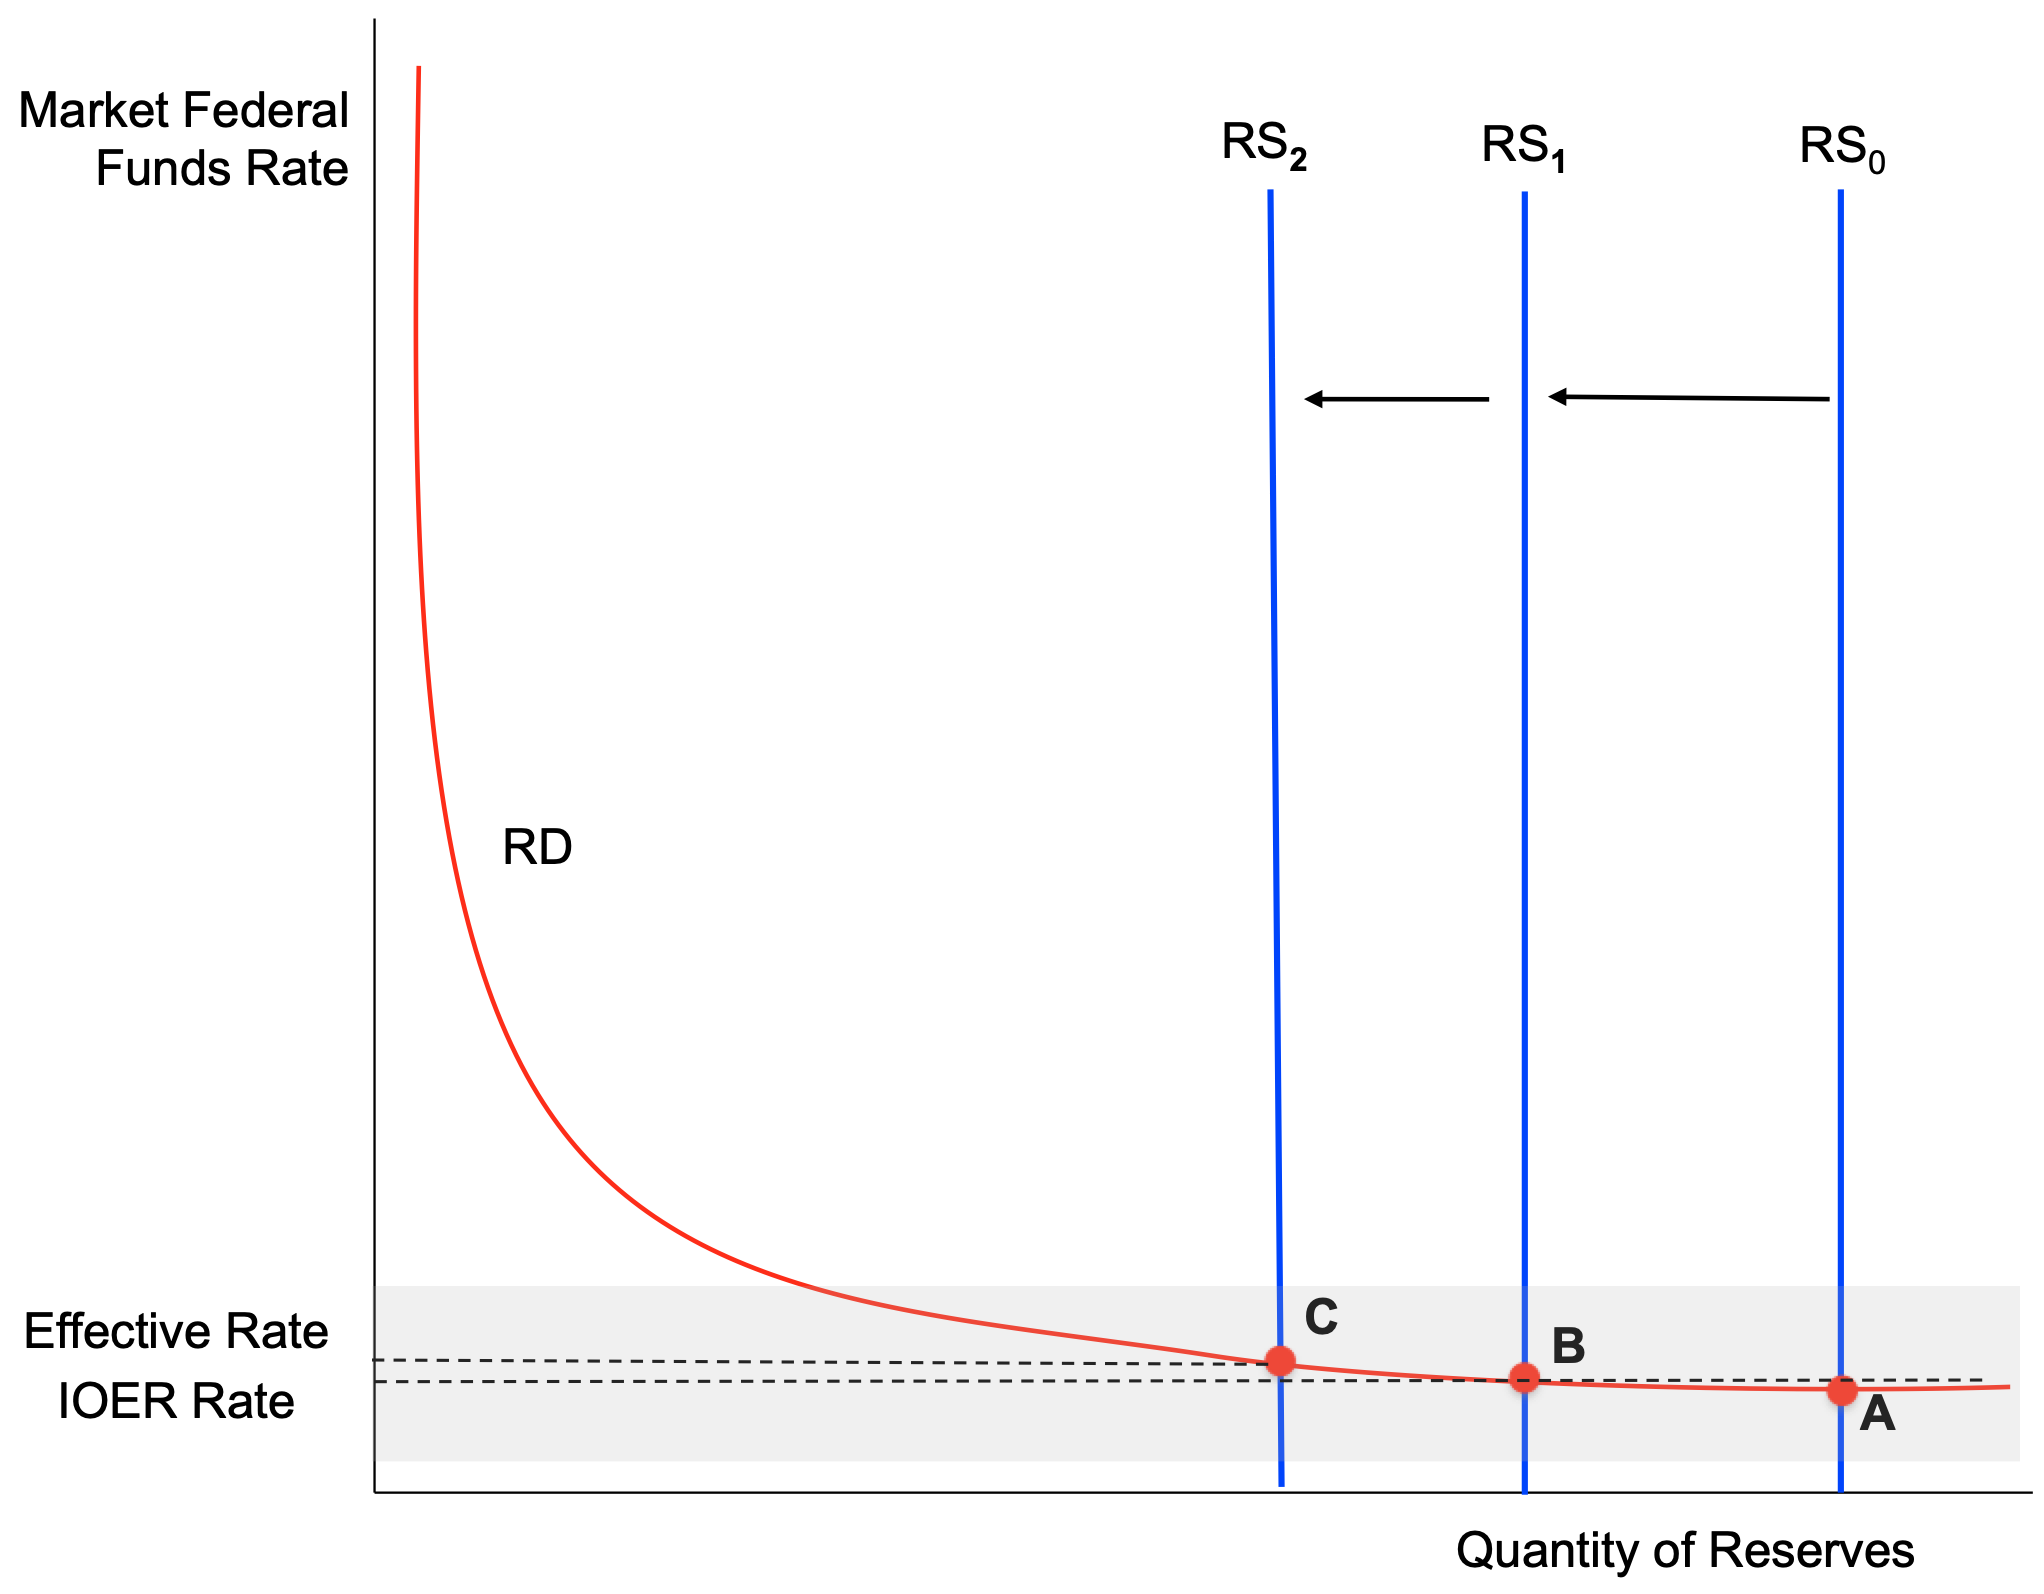 Notes: RD reserve demand. RS reserve supply. The shaded area in the figures denotes the federal funds rate target range.